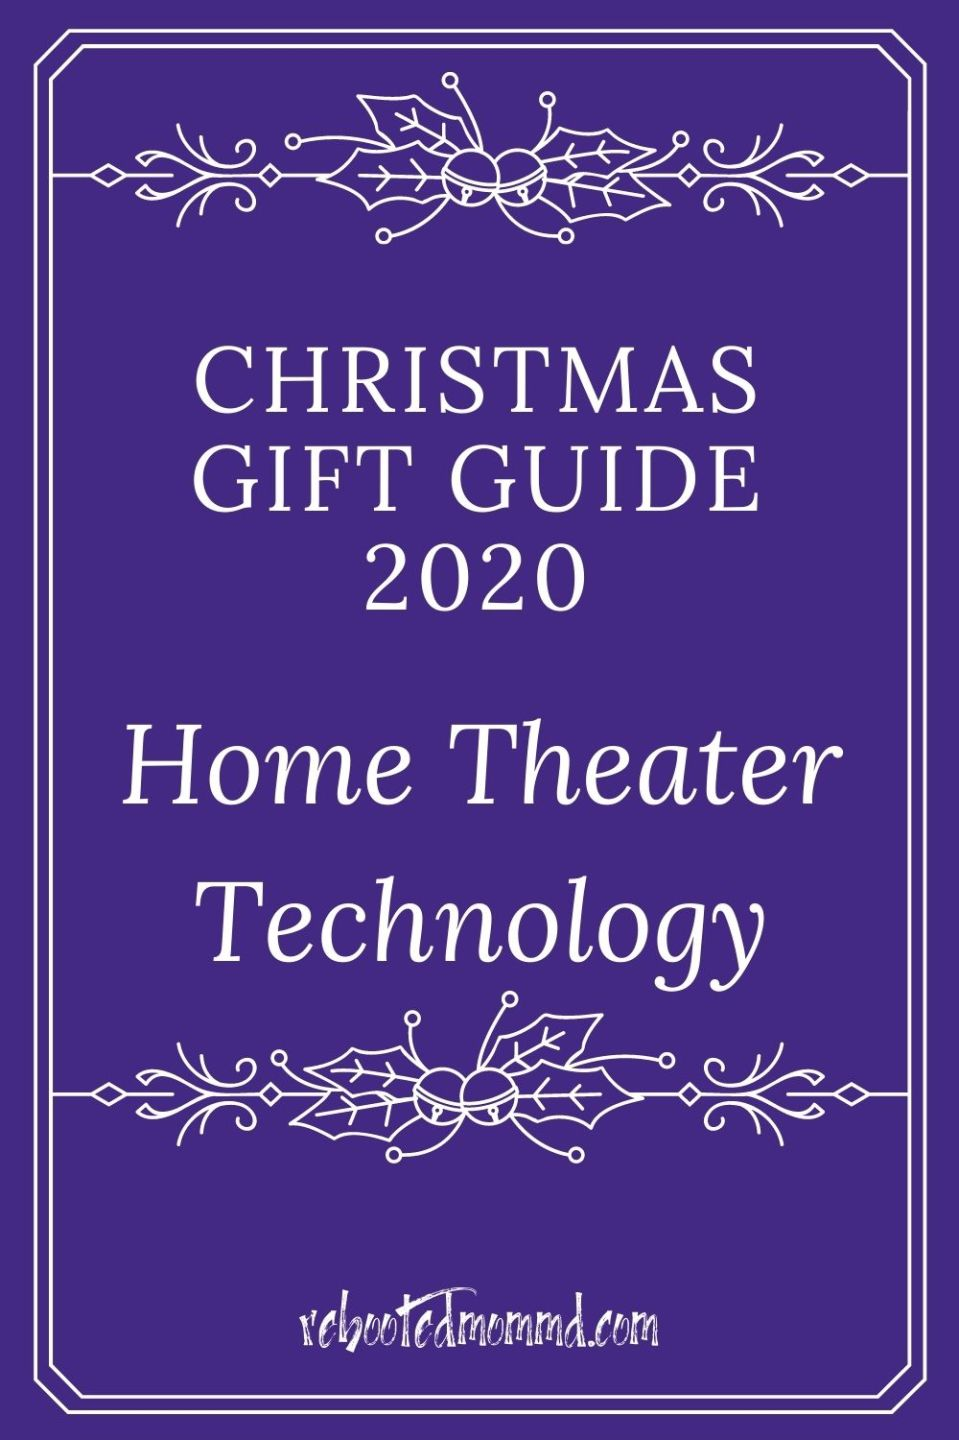 Christmas Gift Guide 2020: Home Theater Technology